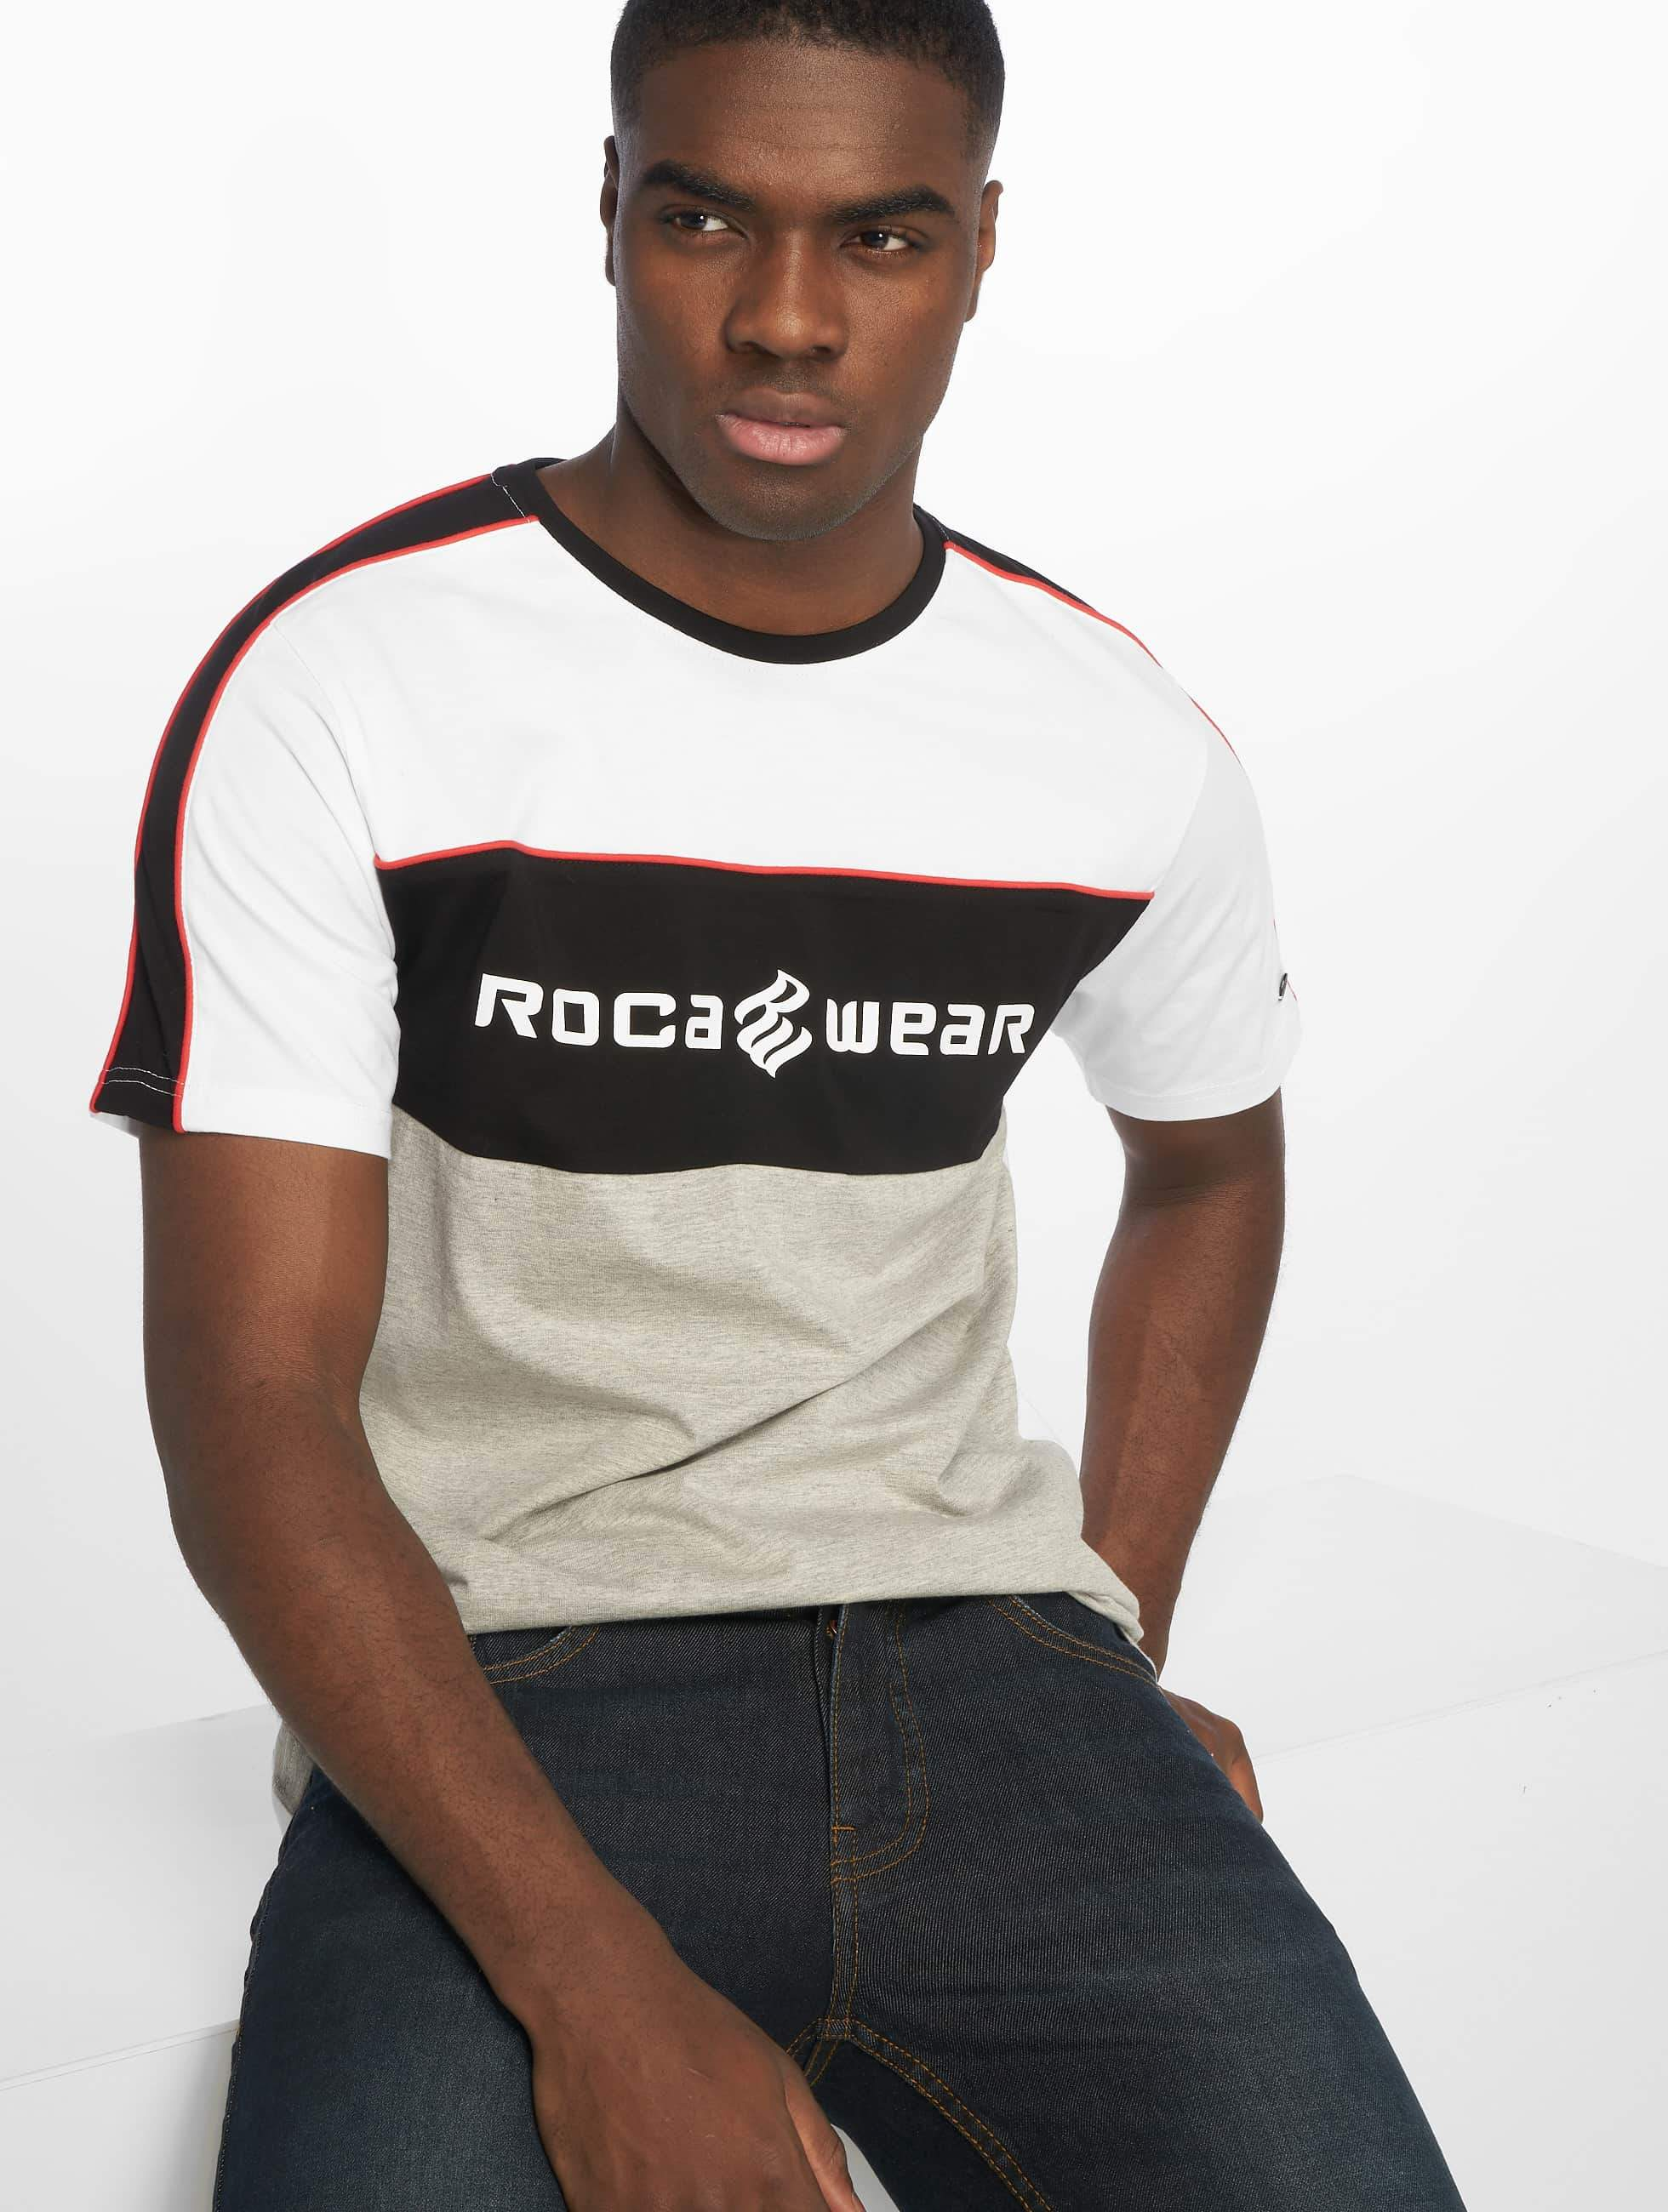 Rocawear / T-Shirt CB in grey M